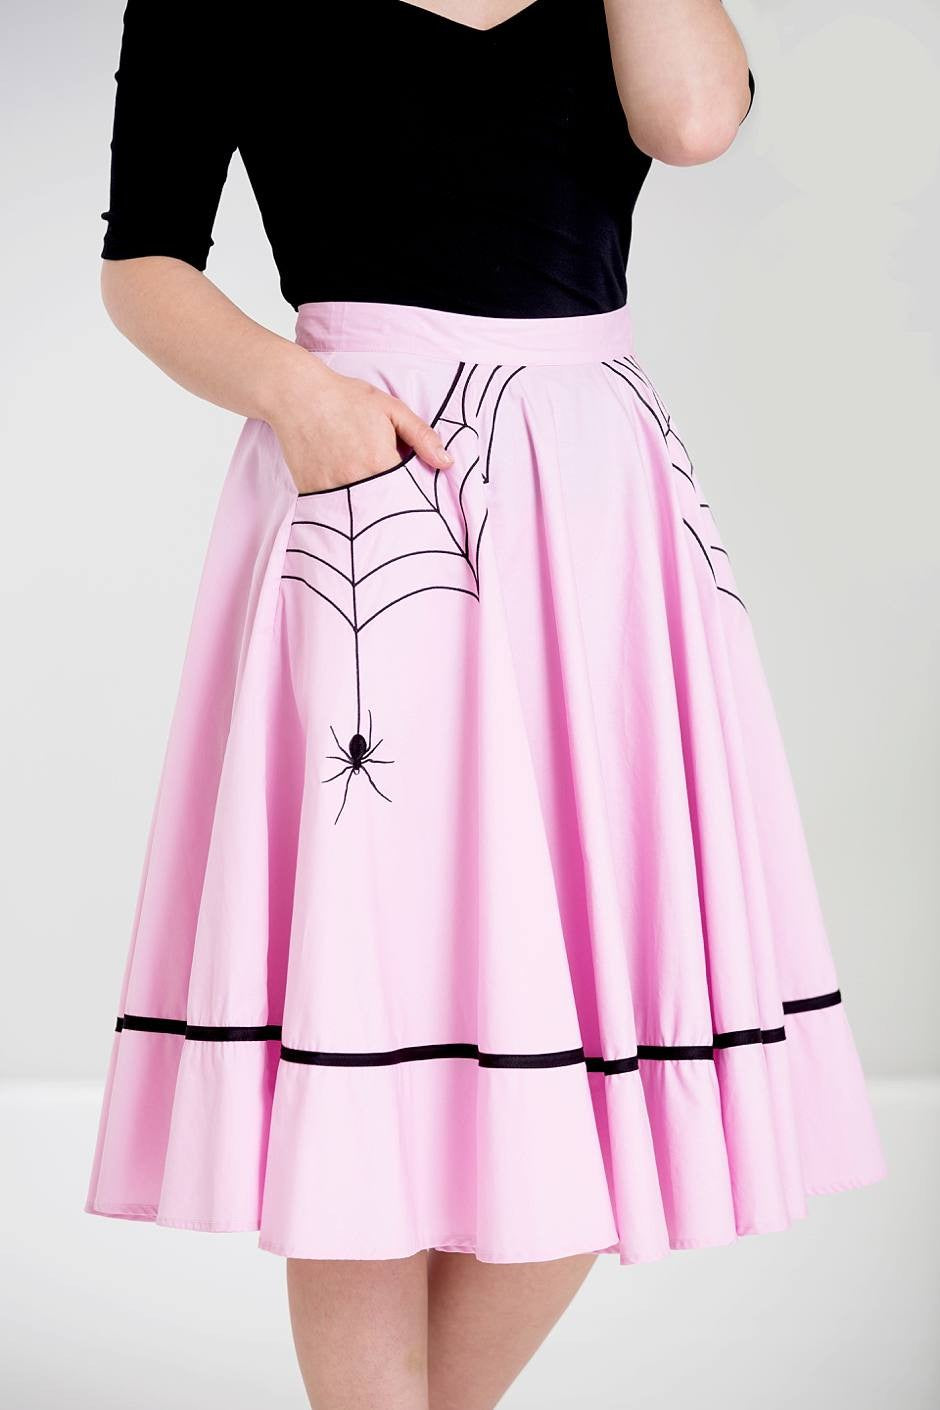 Miss Muffet Spider Skirt in Pink